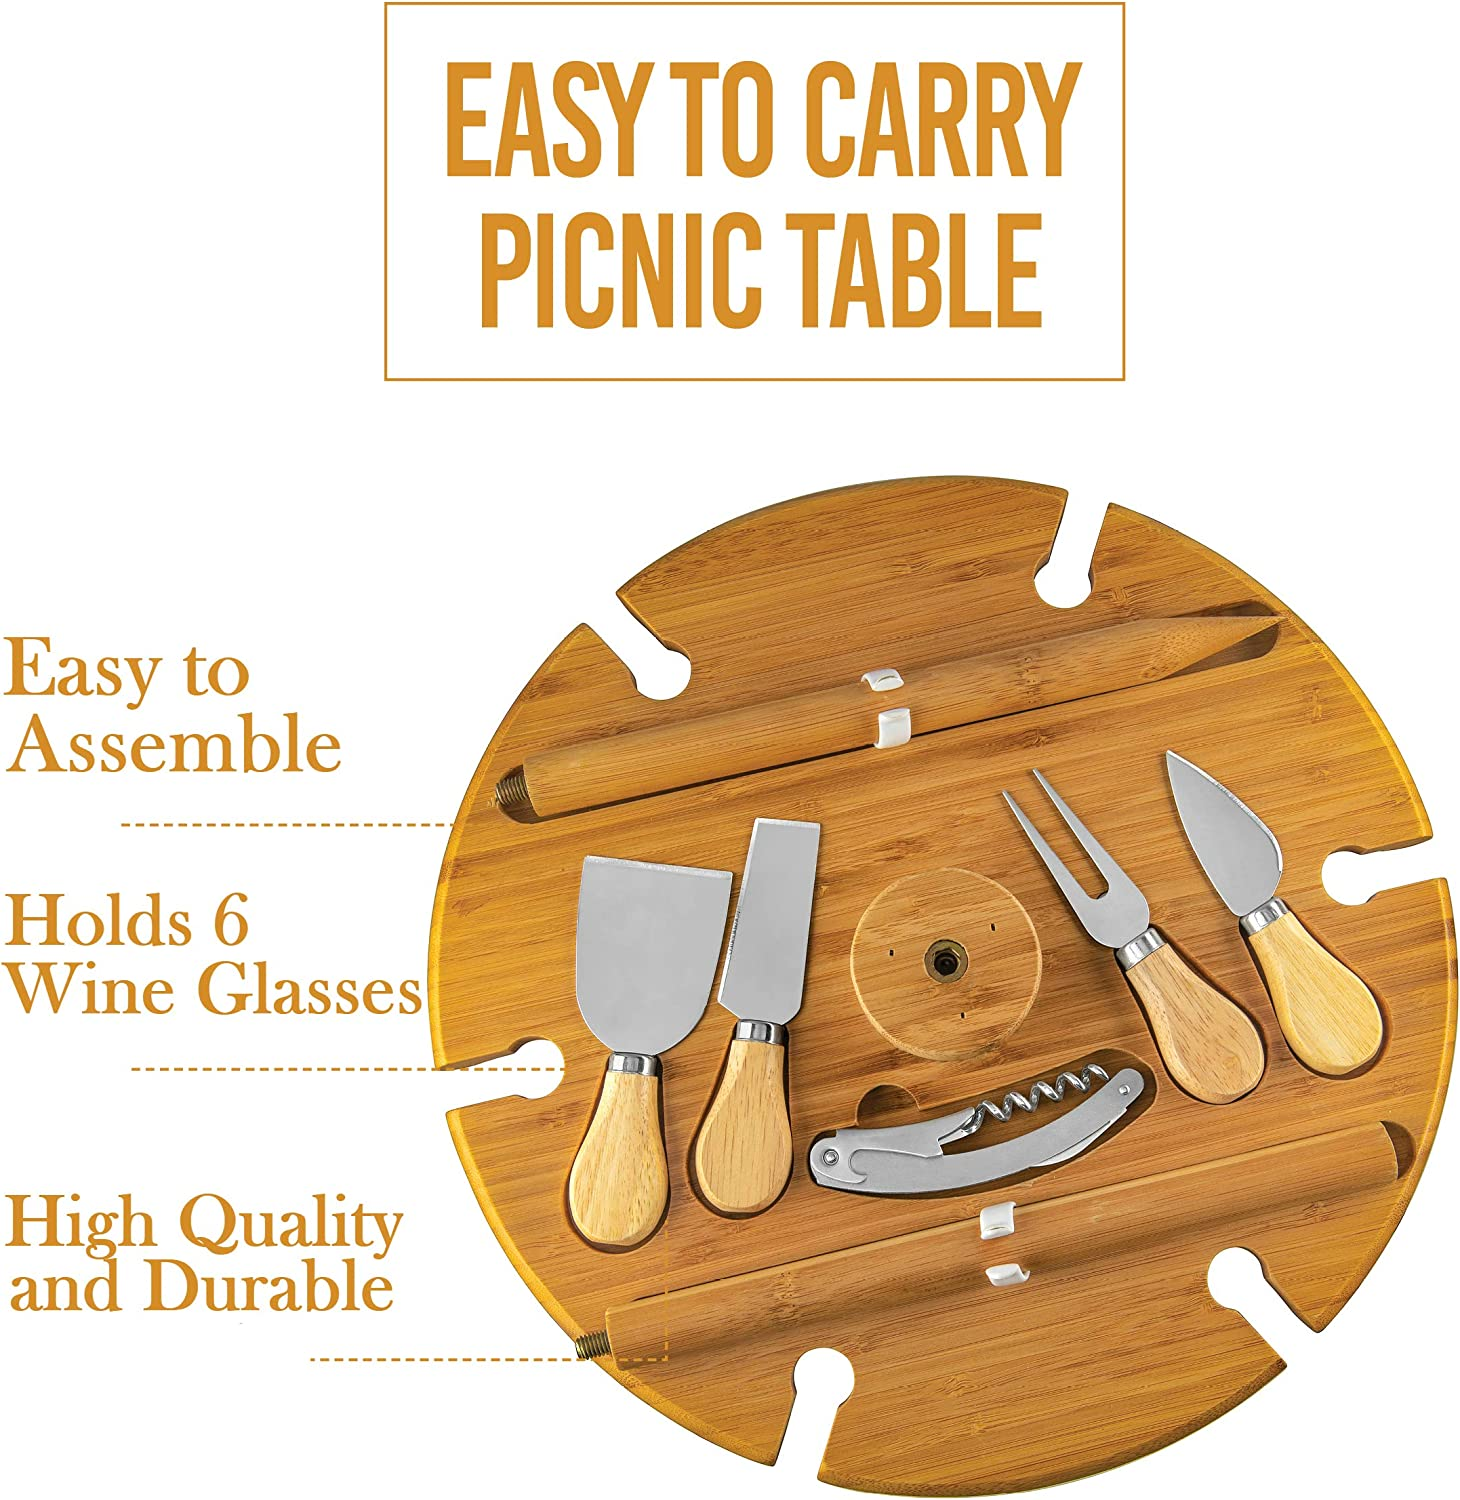 Bambusi Portable Picnic Board with Utensils – 100 Bamboo Outdoor Wine Table Entertaining Camping Cheese Board, Great Gift Idea